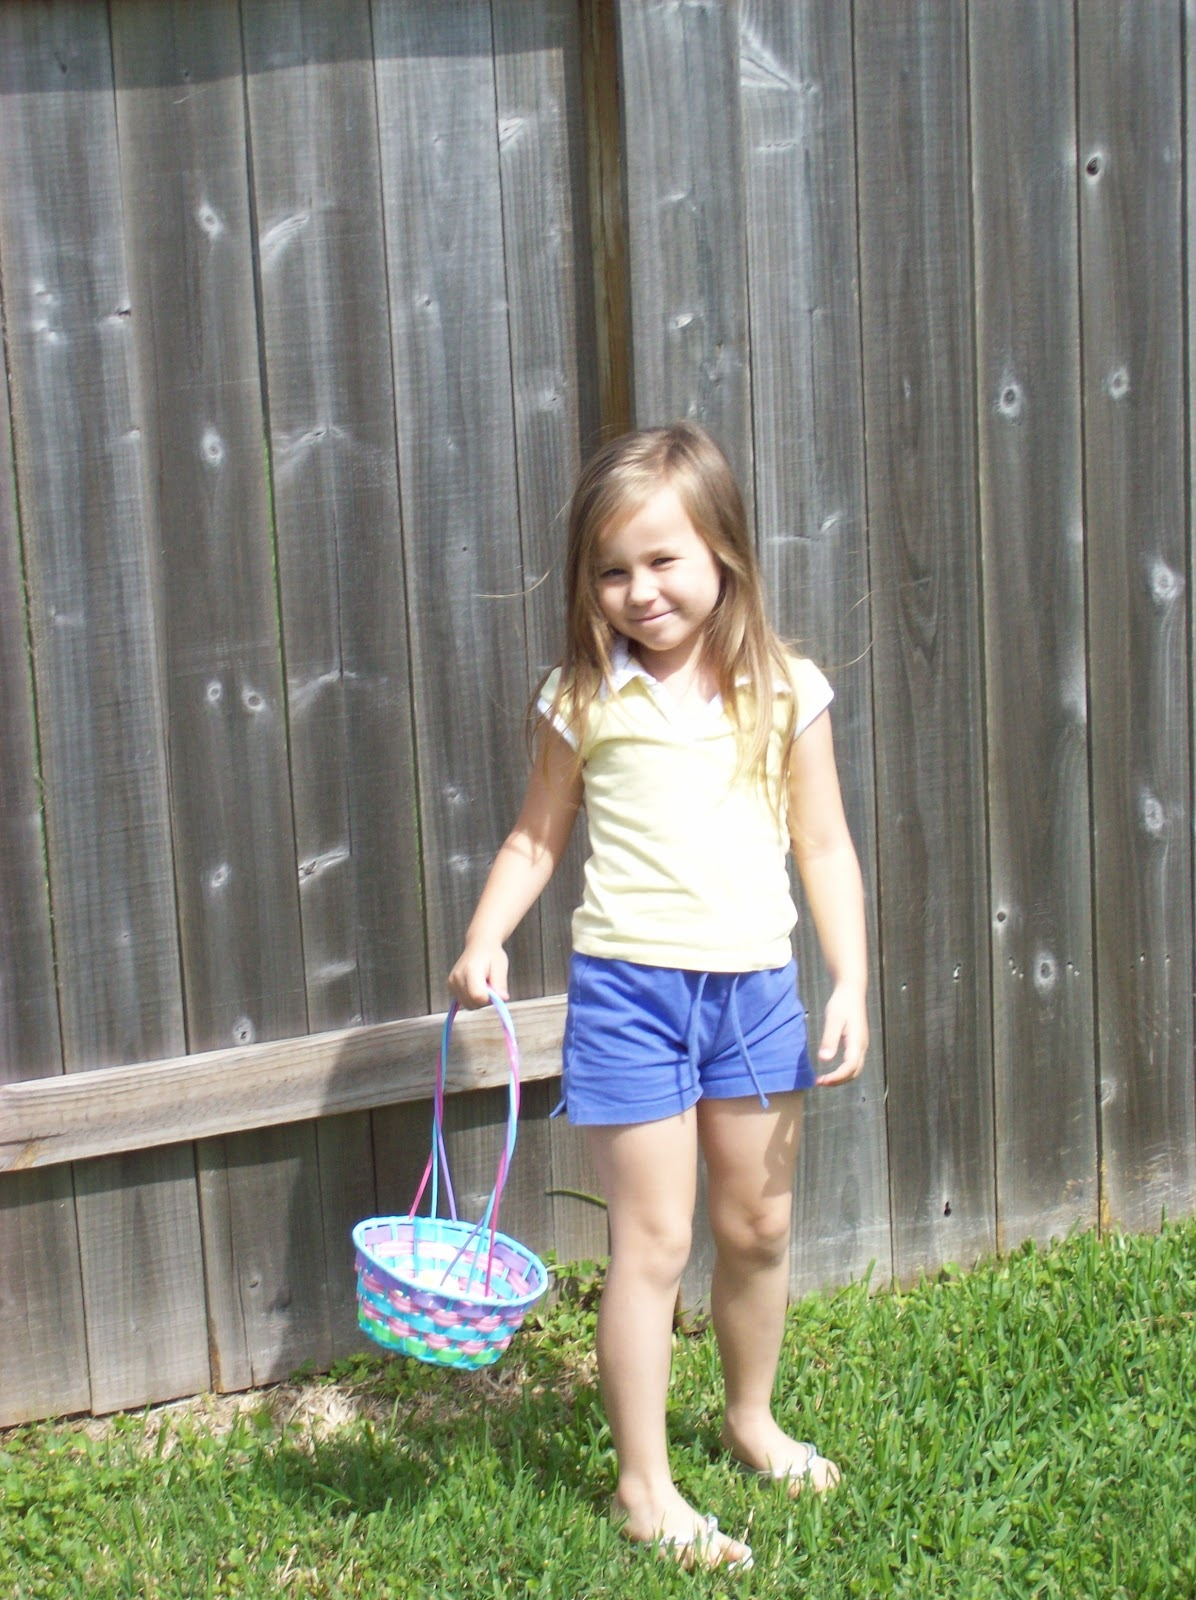 Easter Egg Hunting - 101_2222.JPG